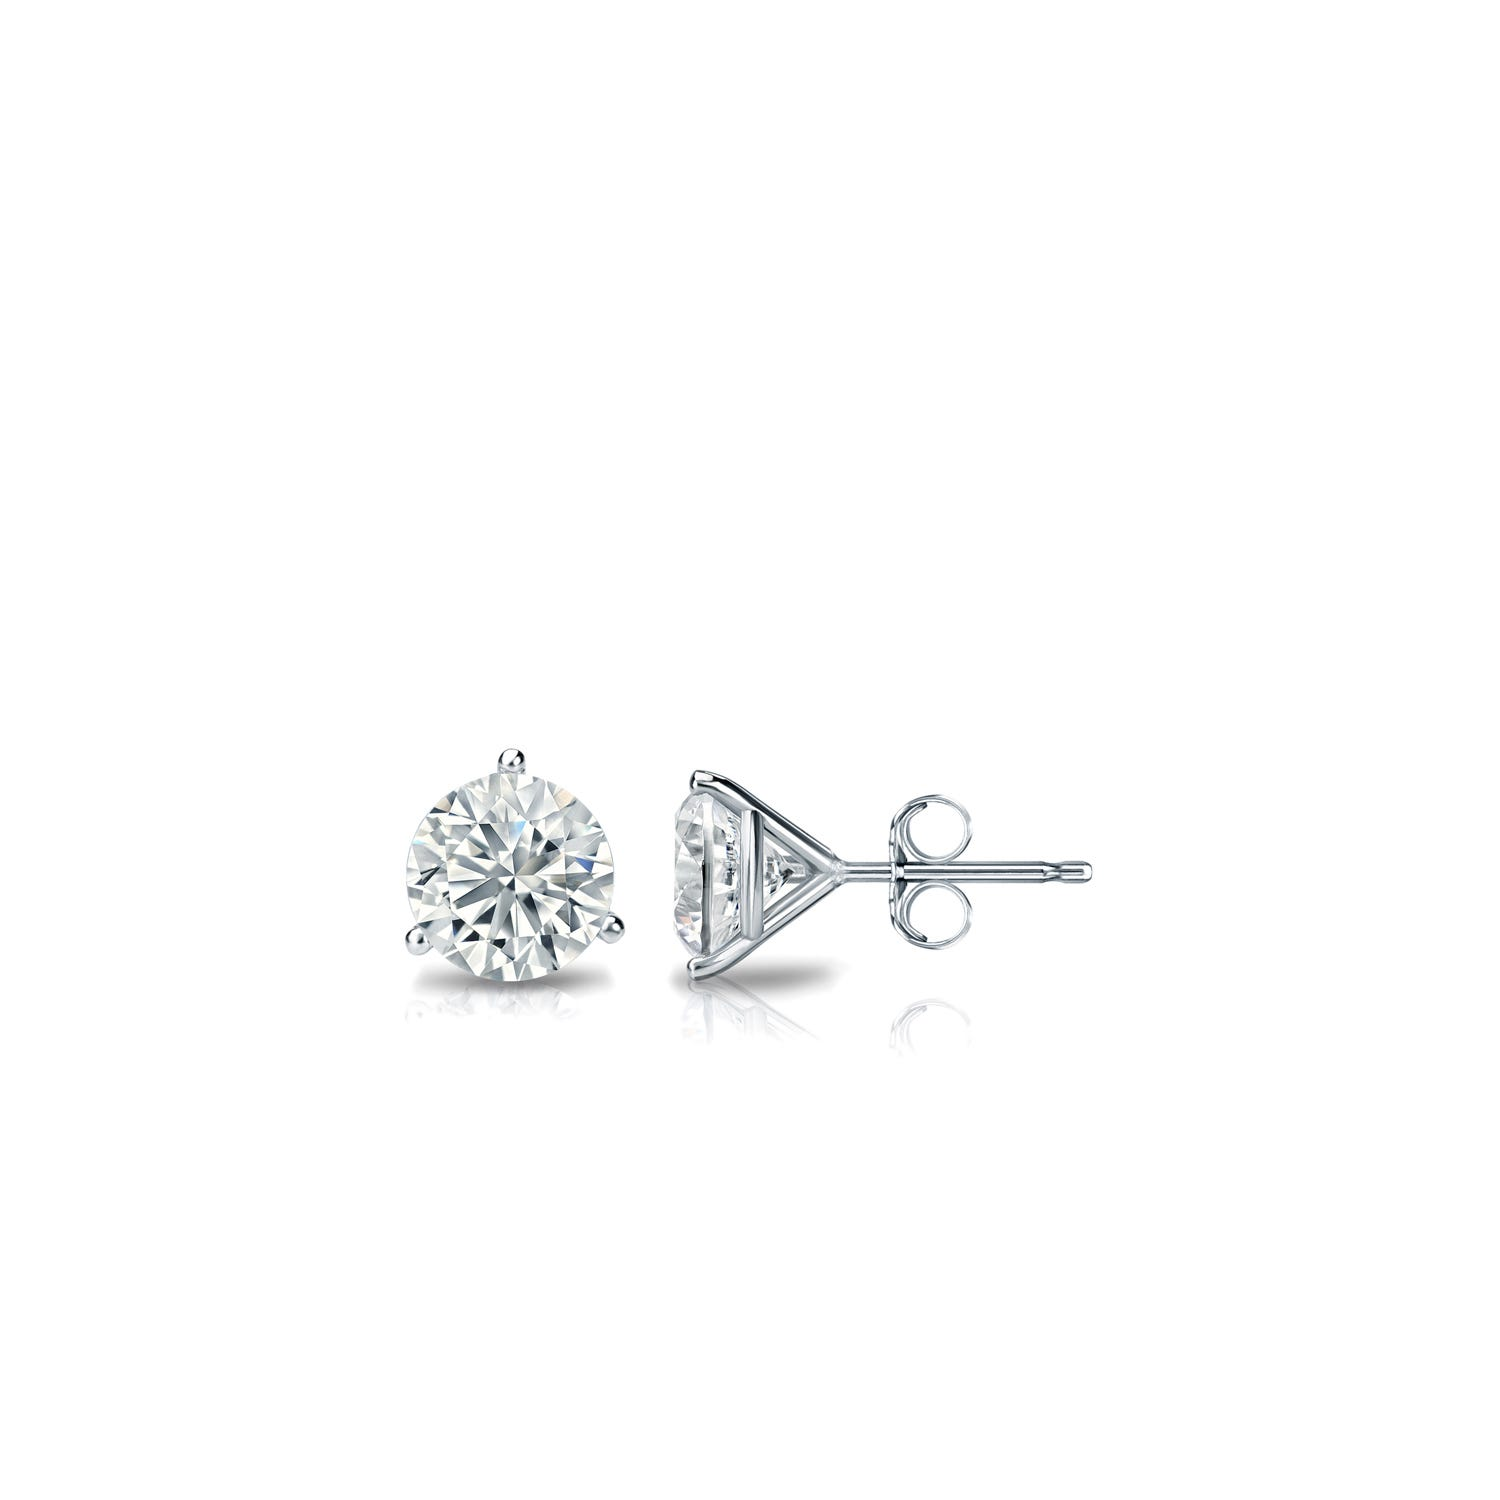 1/6 CTTW Round Diamond Solitaire Stud Earrings IJ SI1 in 14K White Gold 3-Prong Setting